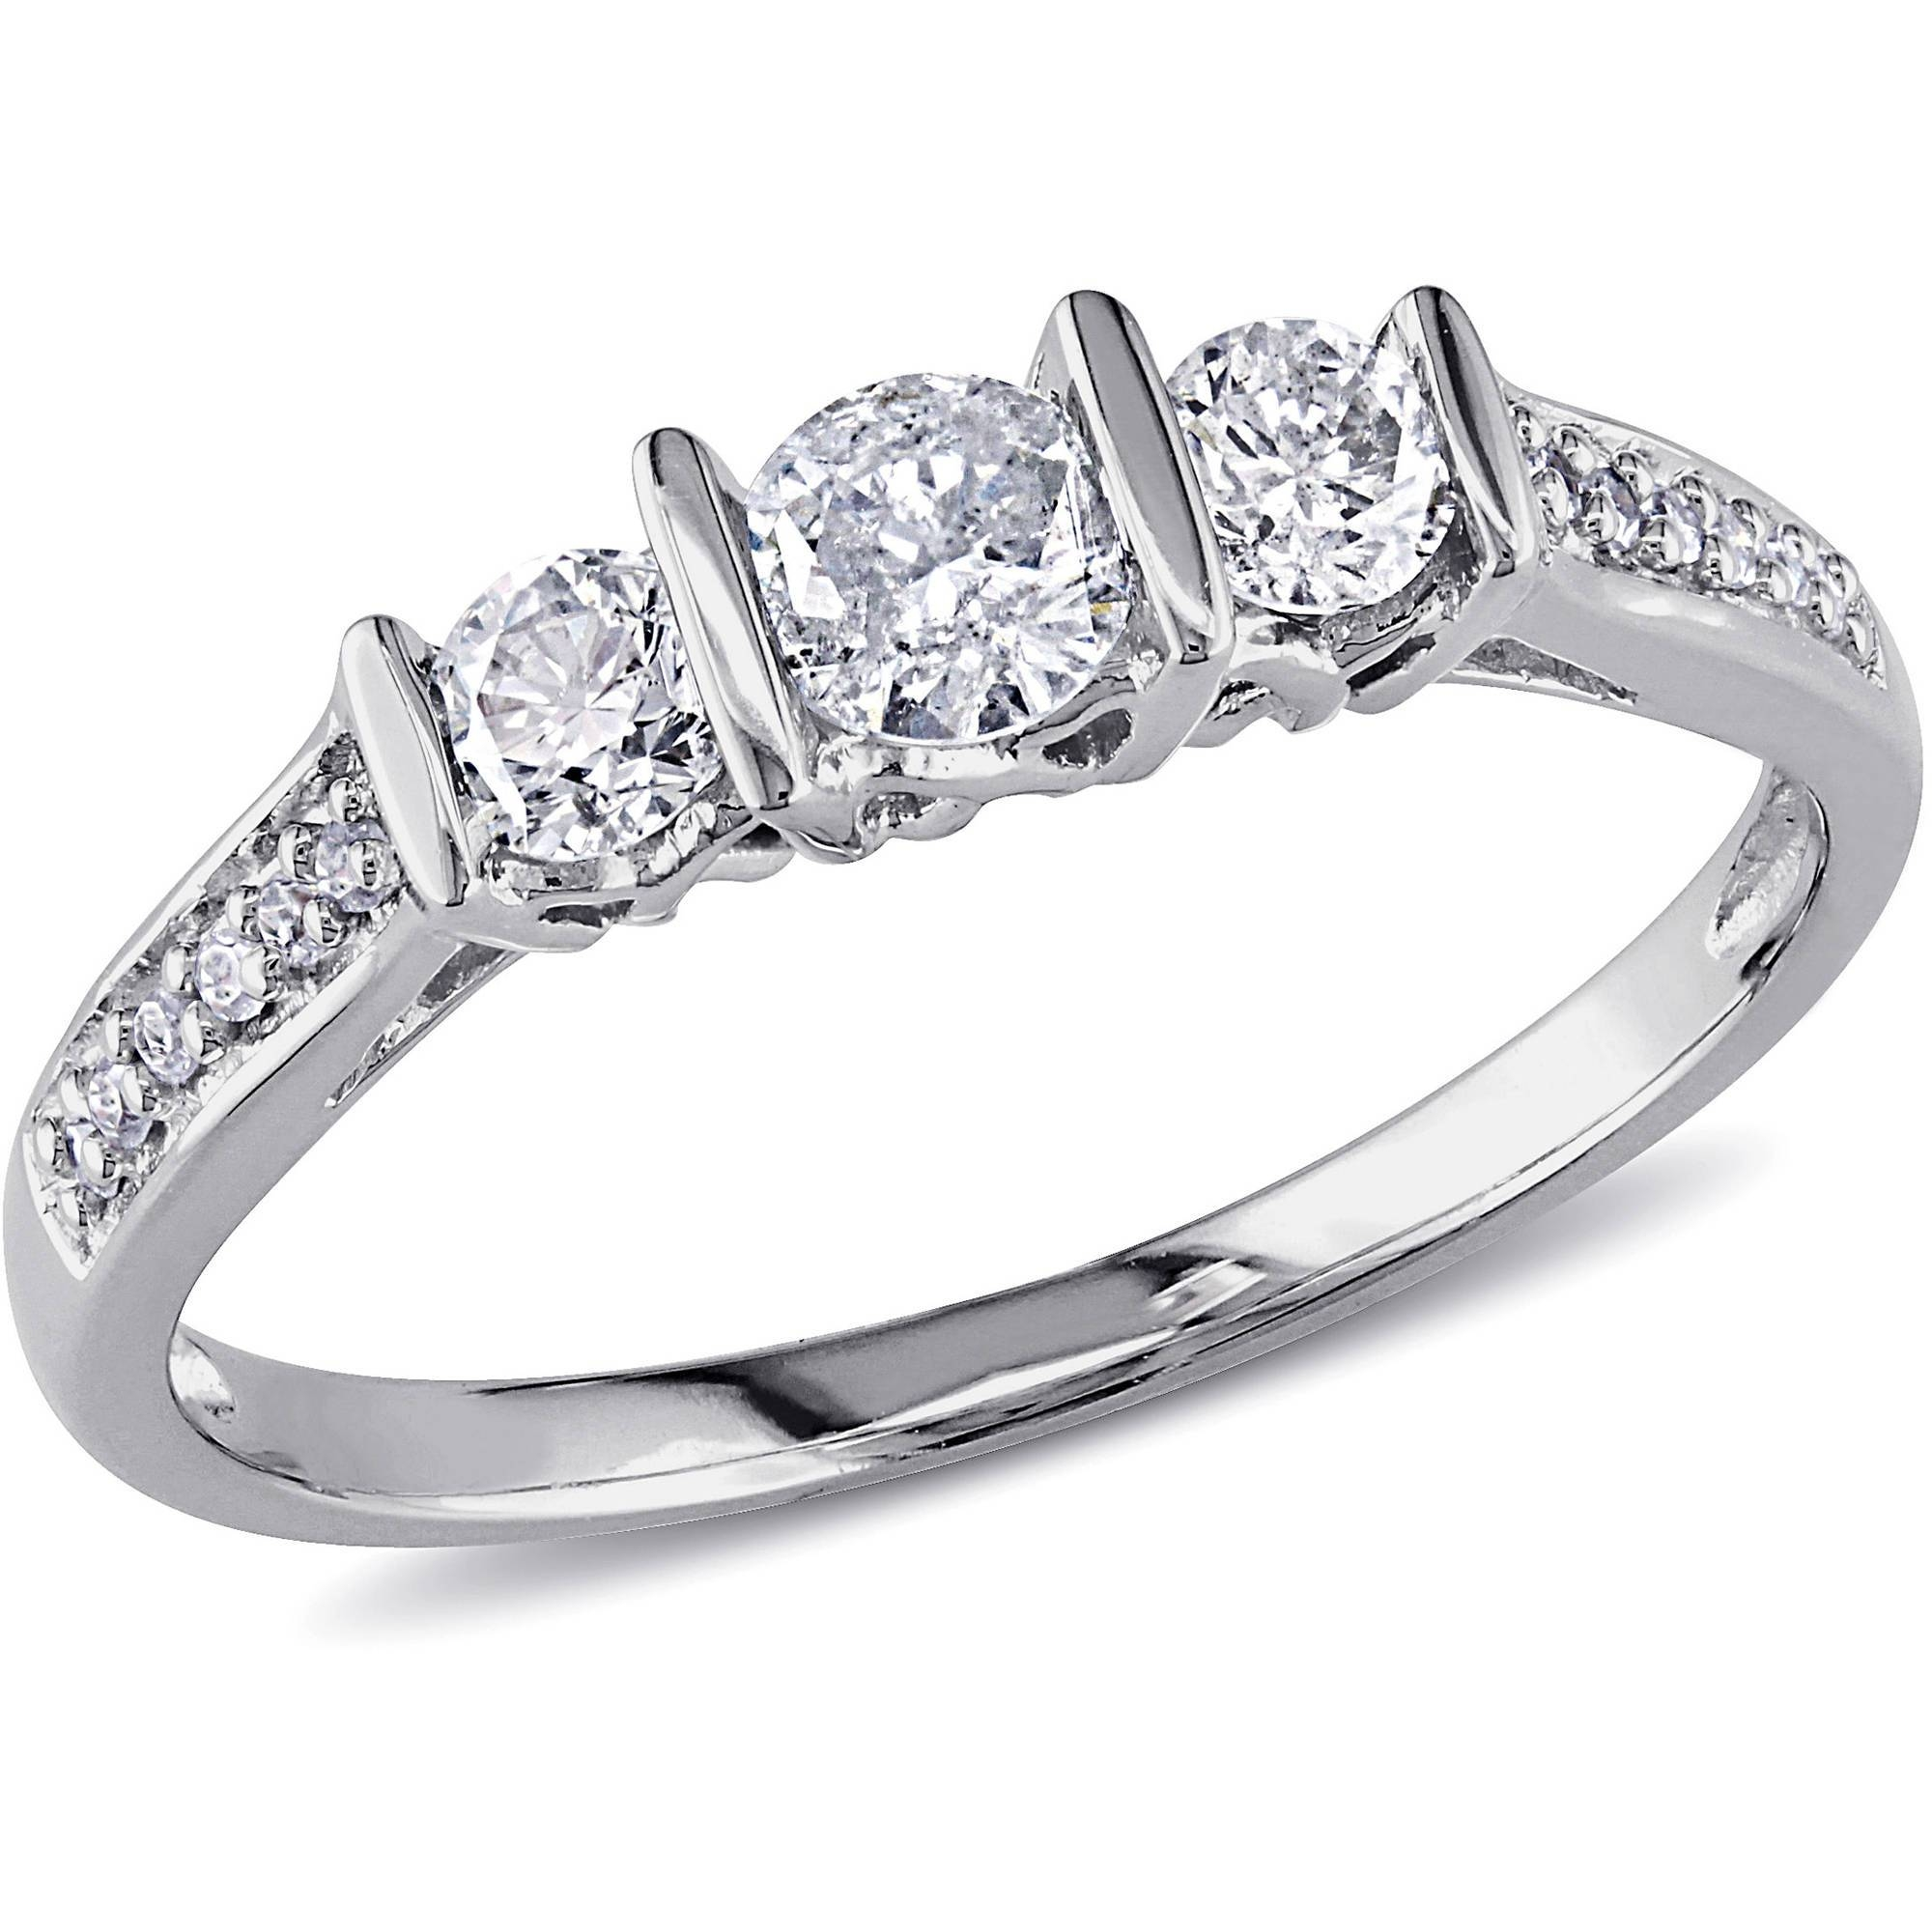 Keepsake Diamond Rings With Regard To Walmart White Gold Engagement Rings (View 5 of 15)